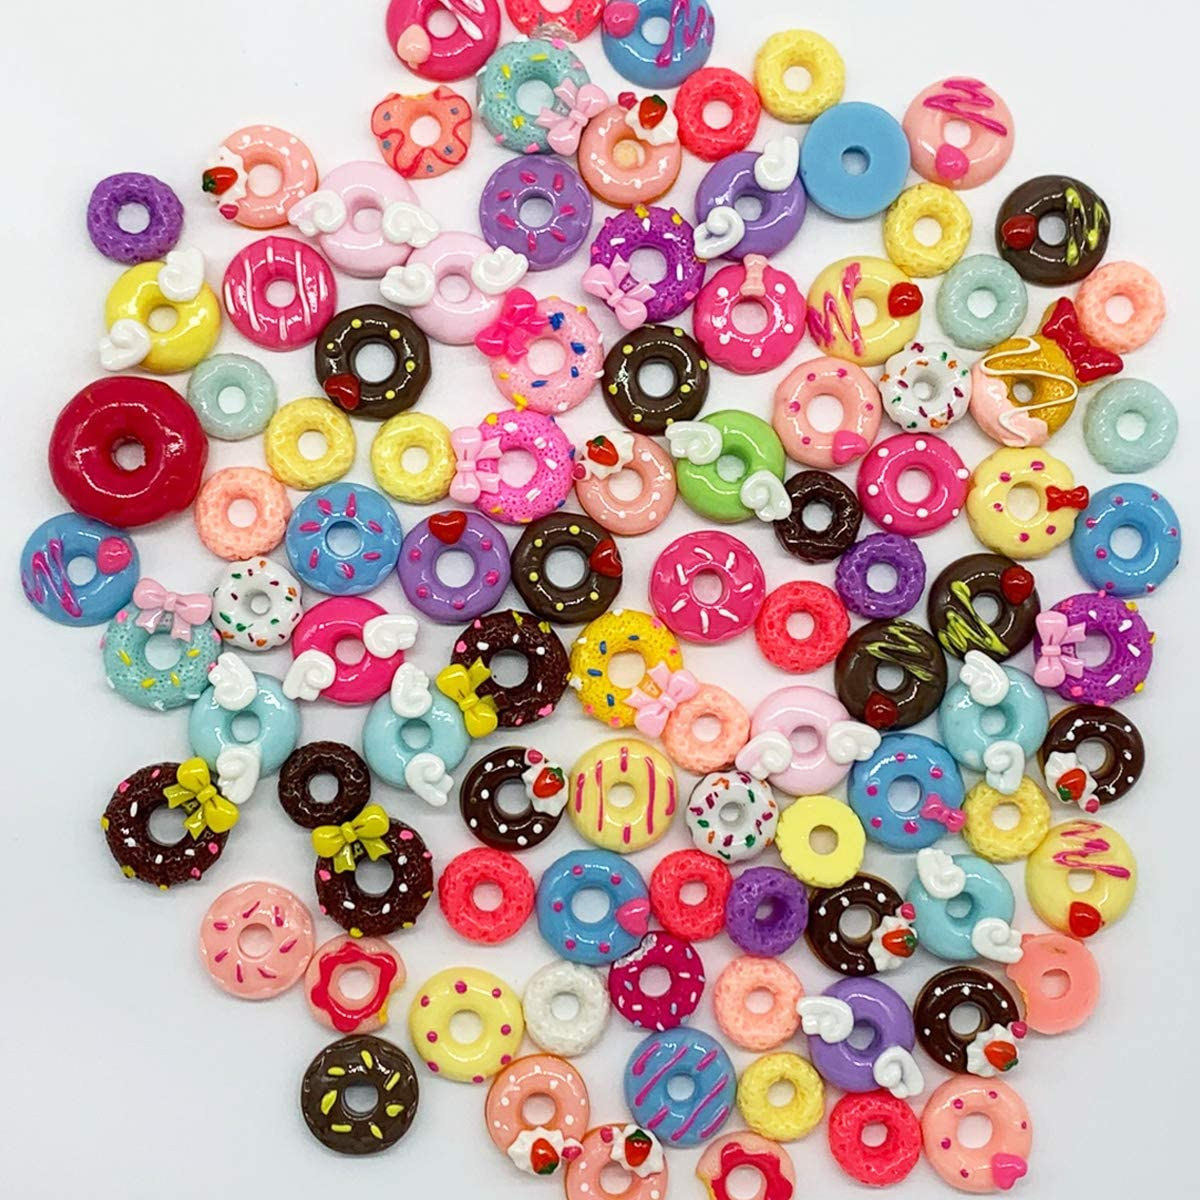 Doughnut Serial Resin Flatback Slime Beads Making Supplies for DIY Scrapbooking Crafts Halloluck 50 Pcs Slime Charms Easter DIY Craft Making Resin Jewery Making Kit